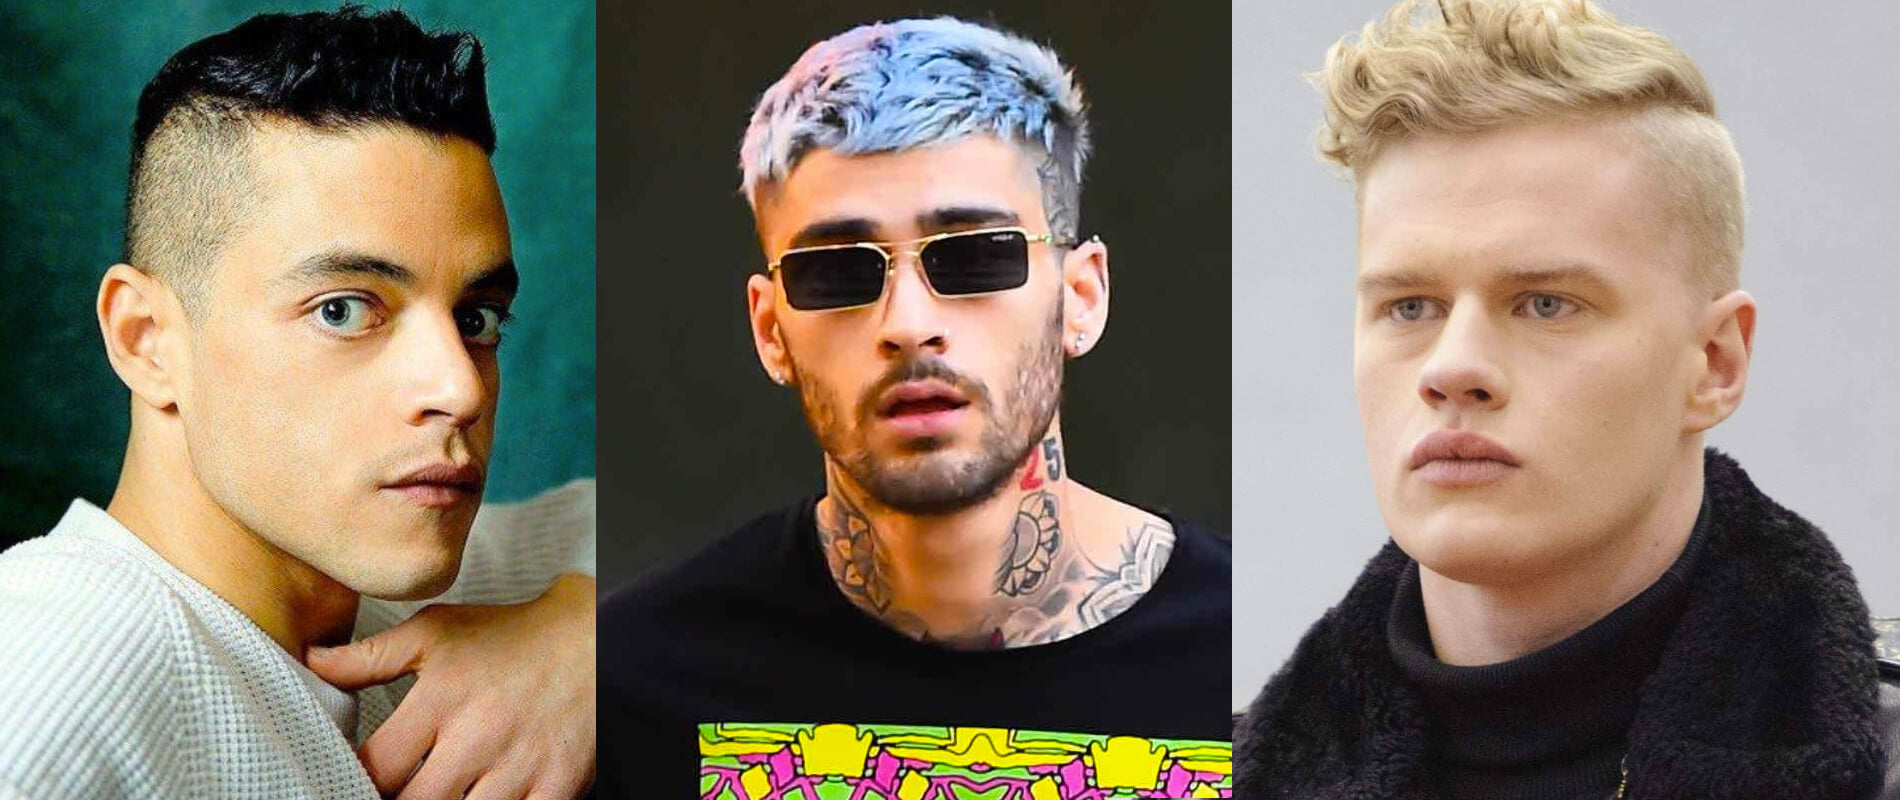 Men S Hairstyles The Newest Trends In 2019 With New Fade